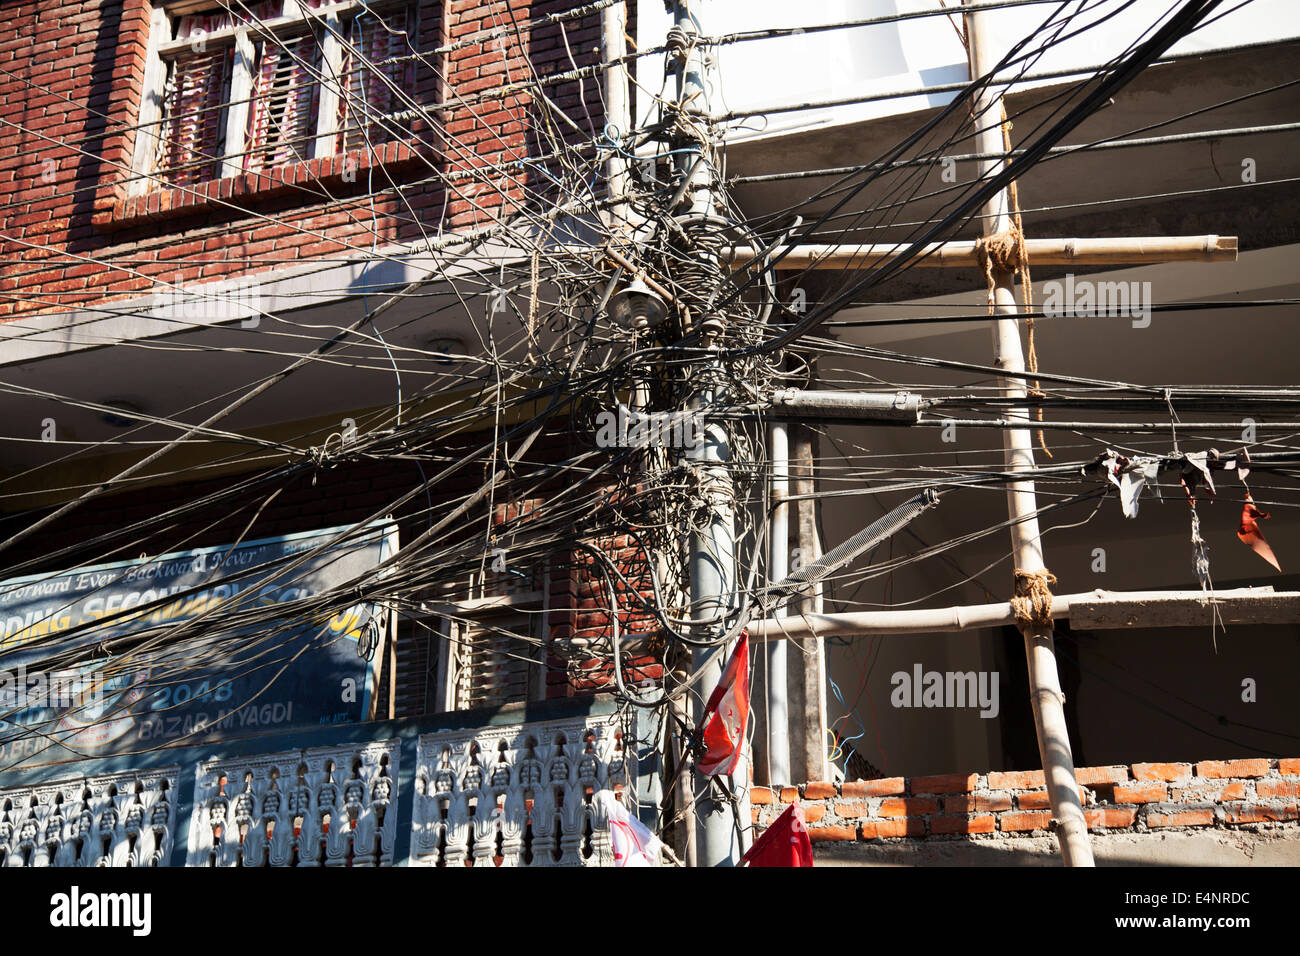 Complex electrical wiring, Beni, Nepal - Stock Image